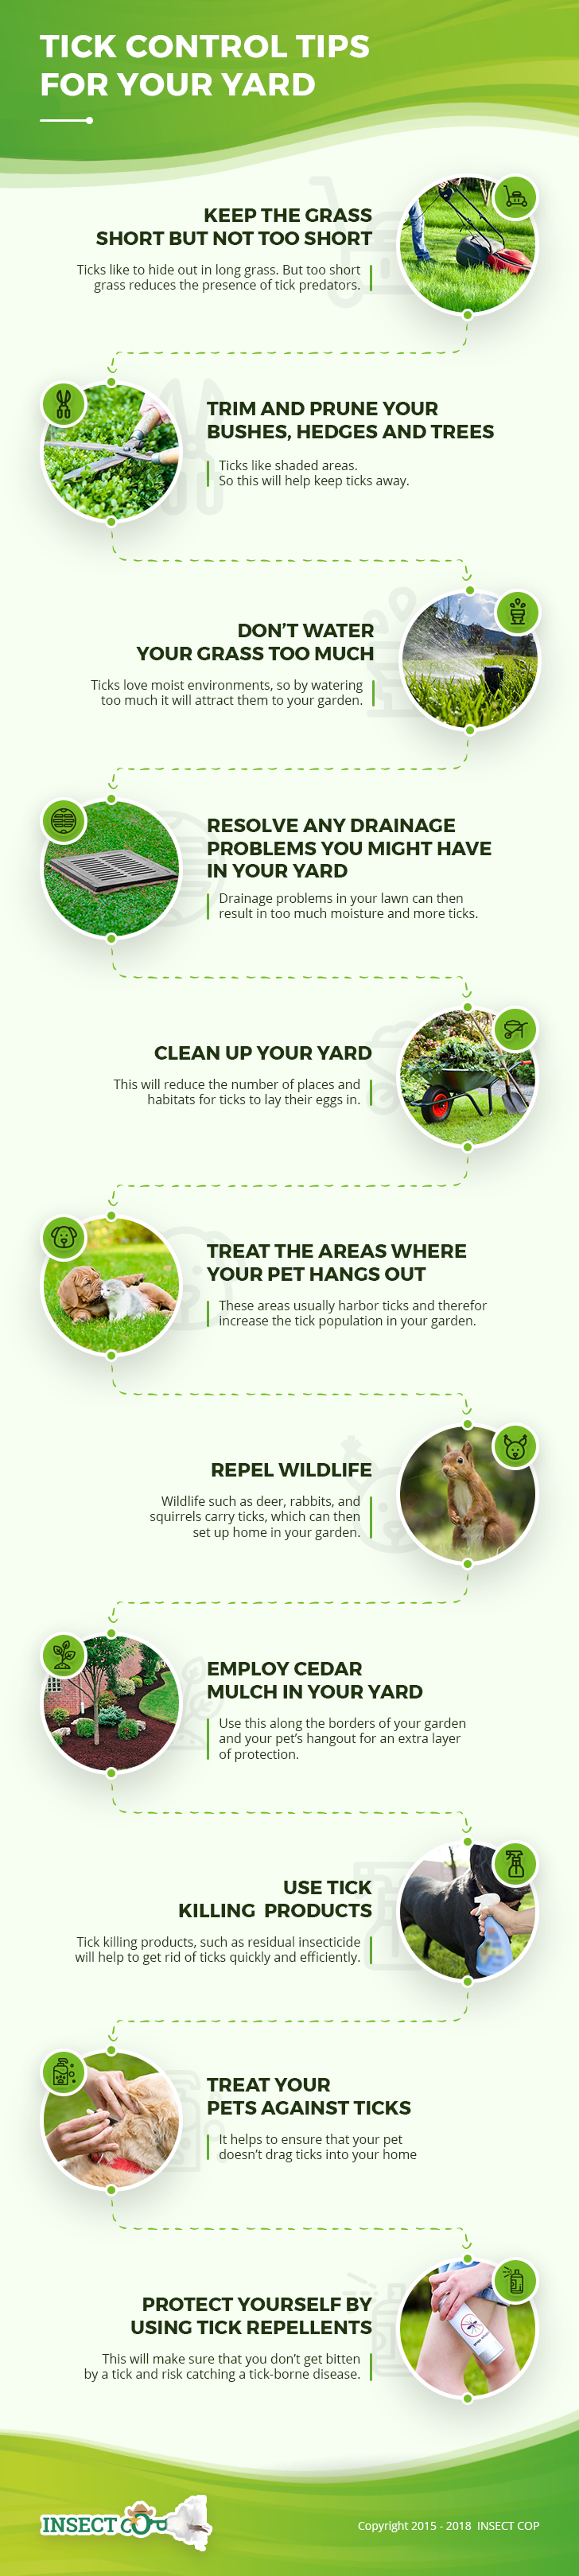 Tick control tips for yard